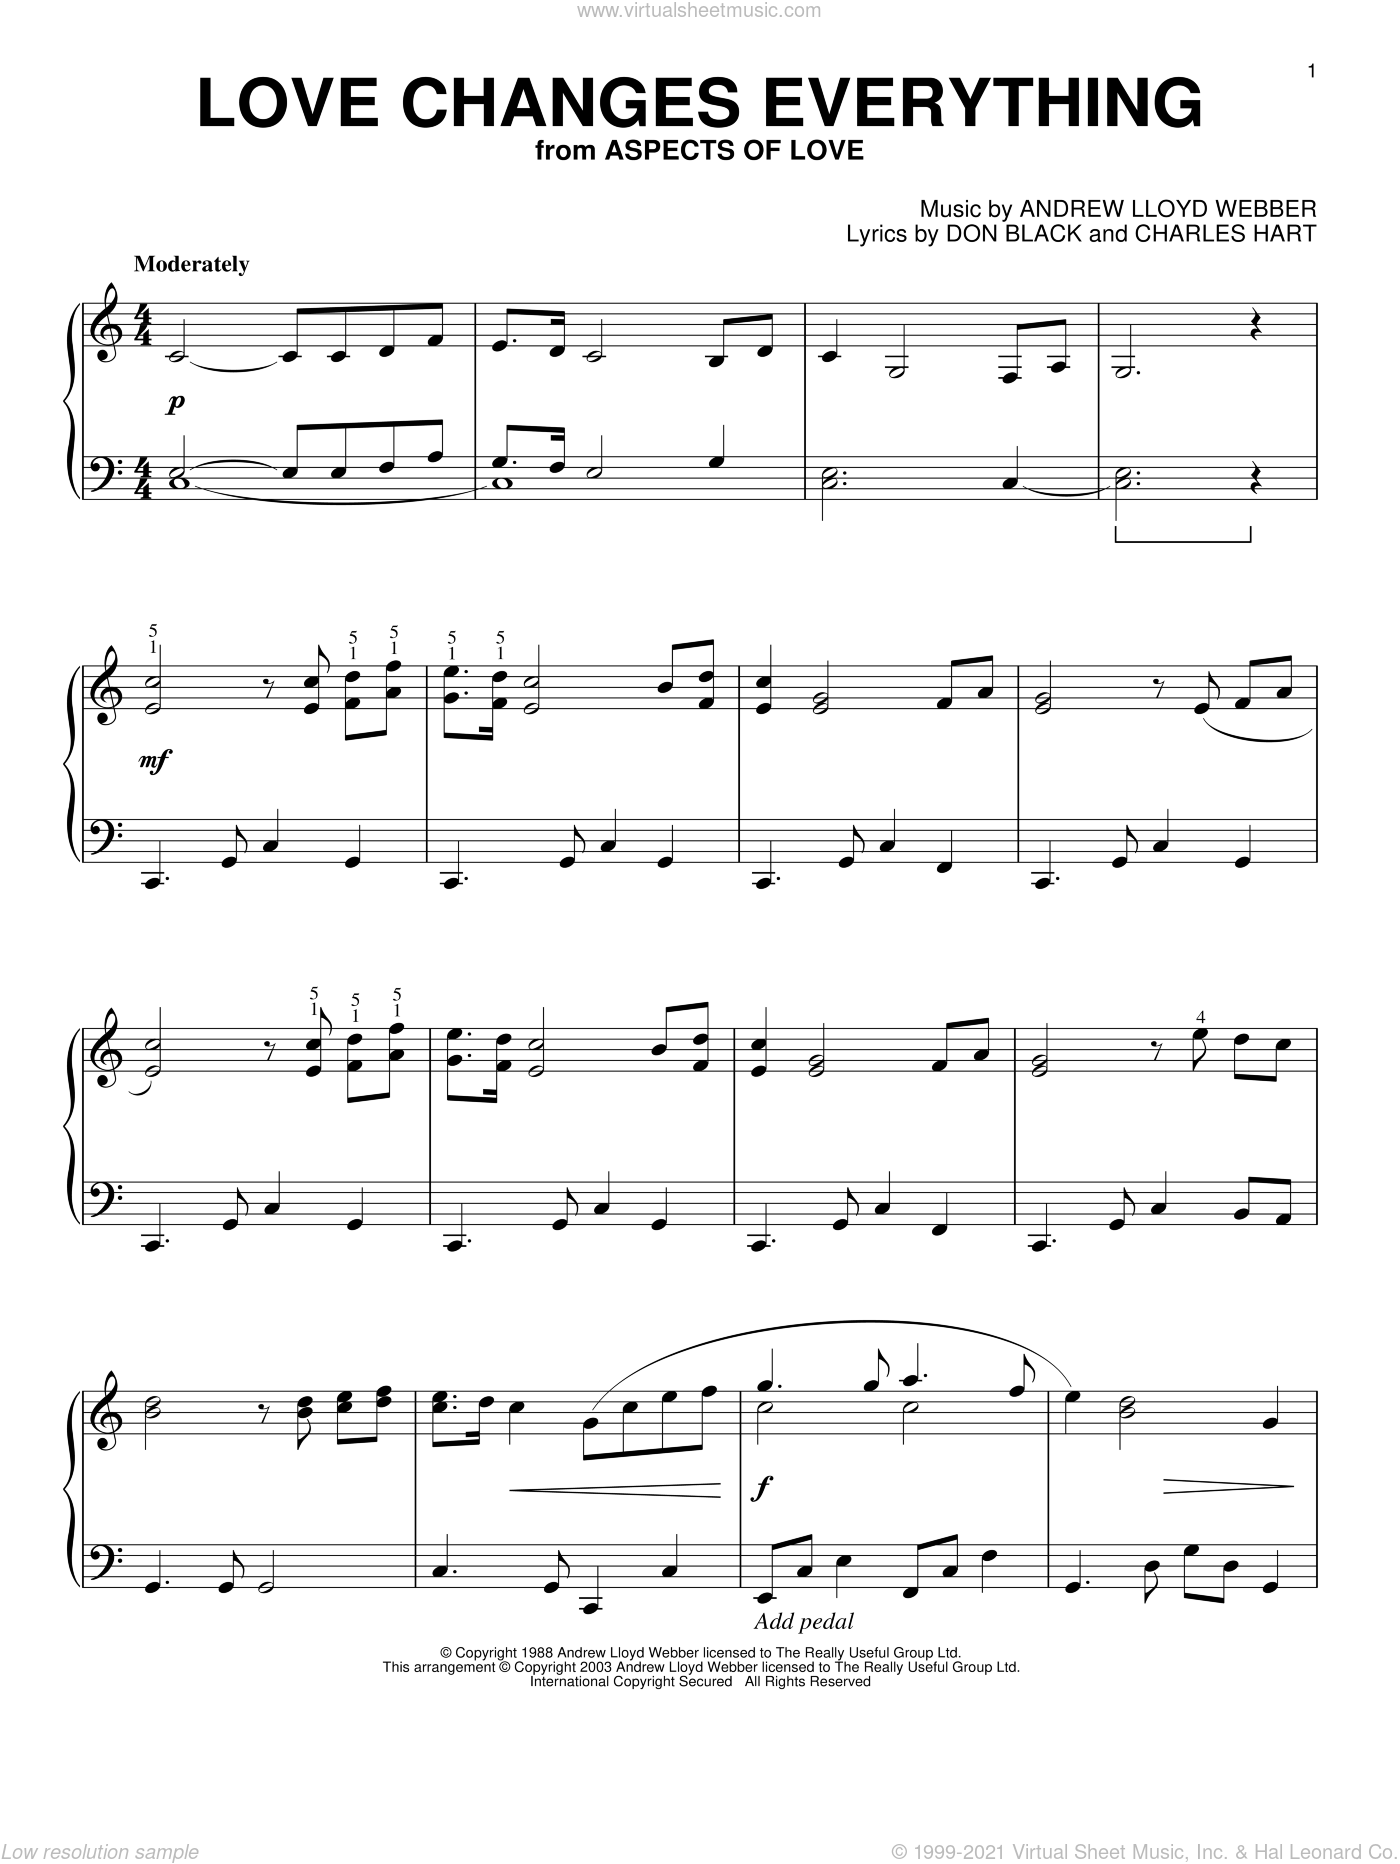 Love Changes Everything, (intermediate) sheet music for piano solo by Andrew Lloyd Webber, Aspects Of Love (Musical), Charles Hart and Don Black, intermediate skill level